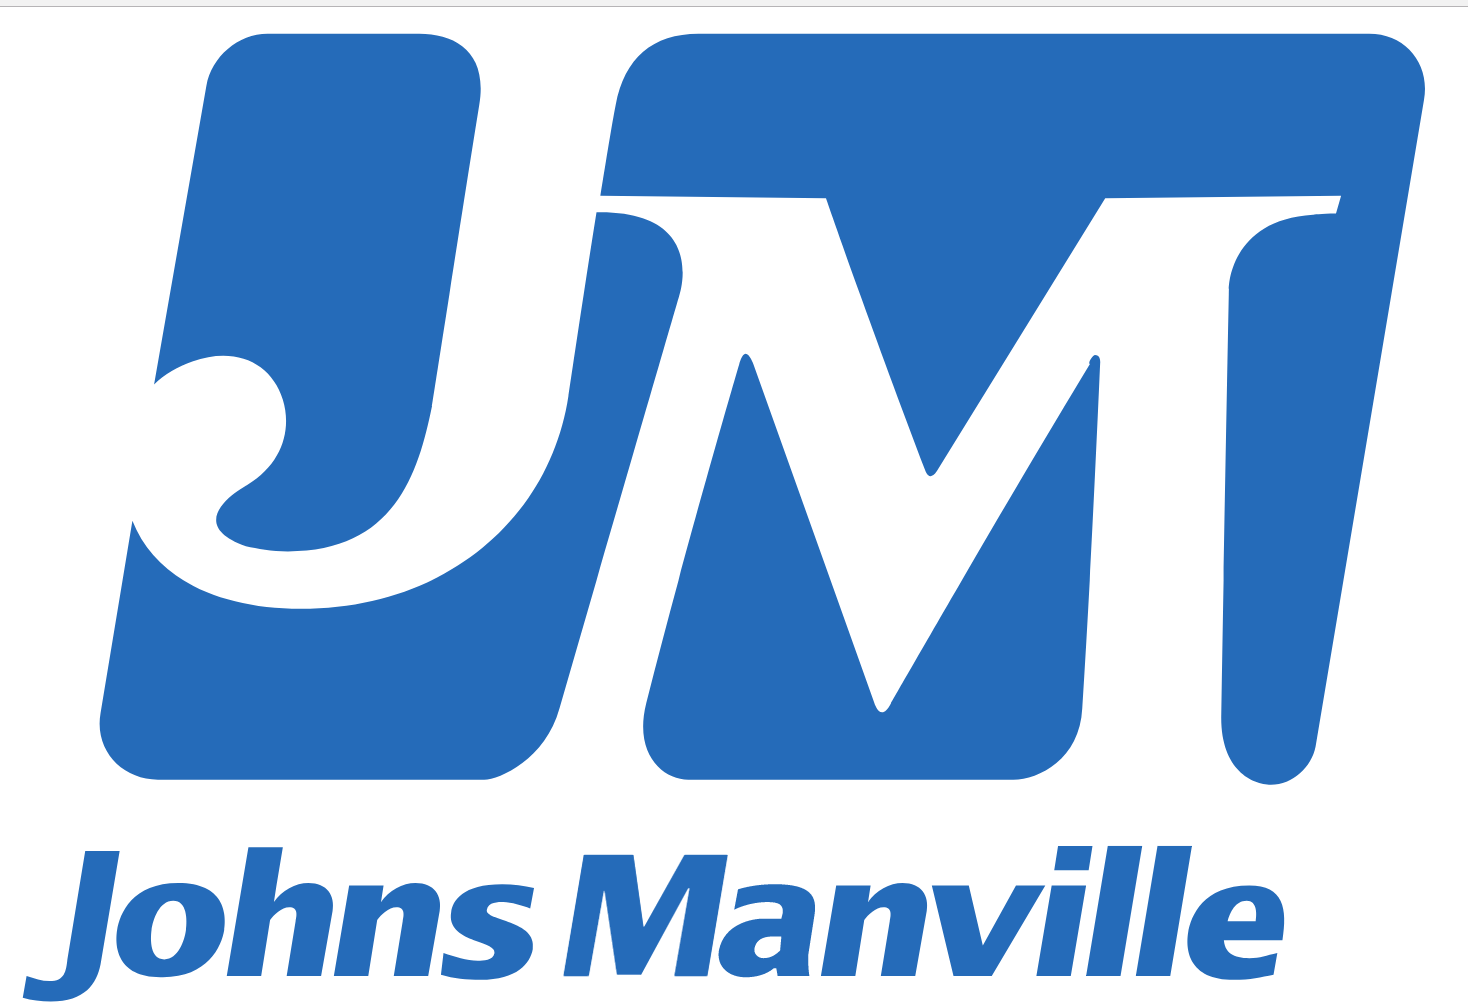 IIG/Johns Mainville